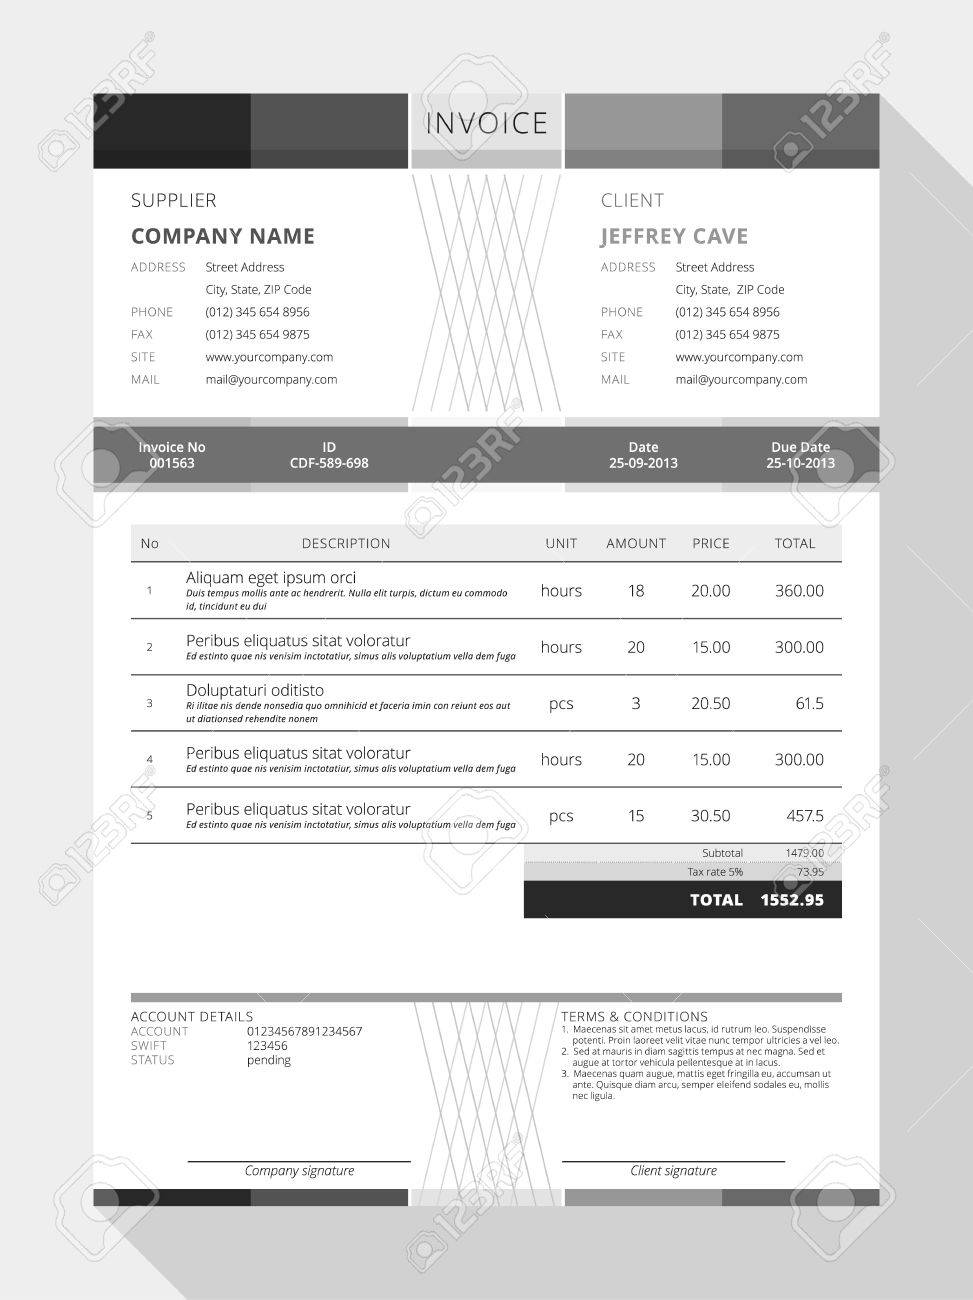 Pxworkoutfreeus  Unusual Design An Invoice  Professional Graphic Design Invoice  With Remarkable Vector Customizable Invoice Form Template Design Vector   Design An Invoice With Appealing Receipt Machine Also Non Profit Donation Receipt Template In Addition Auto Repair Receipt And Apple Receipts As Well As Walmart Exchange Policy Without Receipt Additionally Does Gmail Have Read Receipt Option From Happytomco With Pxworkoutfreeus  Remarkable Design An Invoice  Professional Graphic Design Invoice  With Appealing Vector Customizable Invoice Form Template Design Vector   Design An Invoice And Unusual Receipt Machine Also Non Profit Donation Receipt Template In Addition Auto Repair Receipt From Happytomco